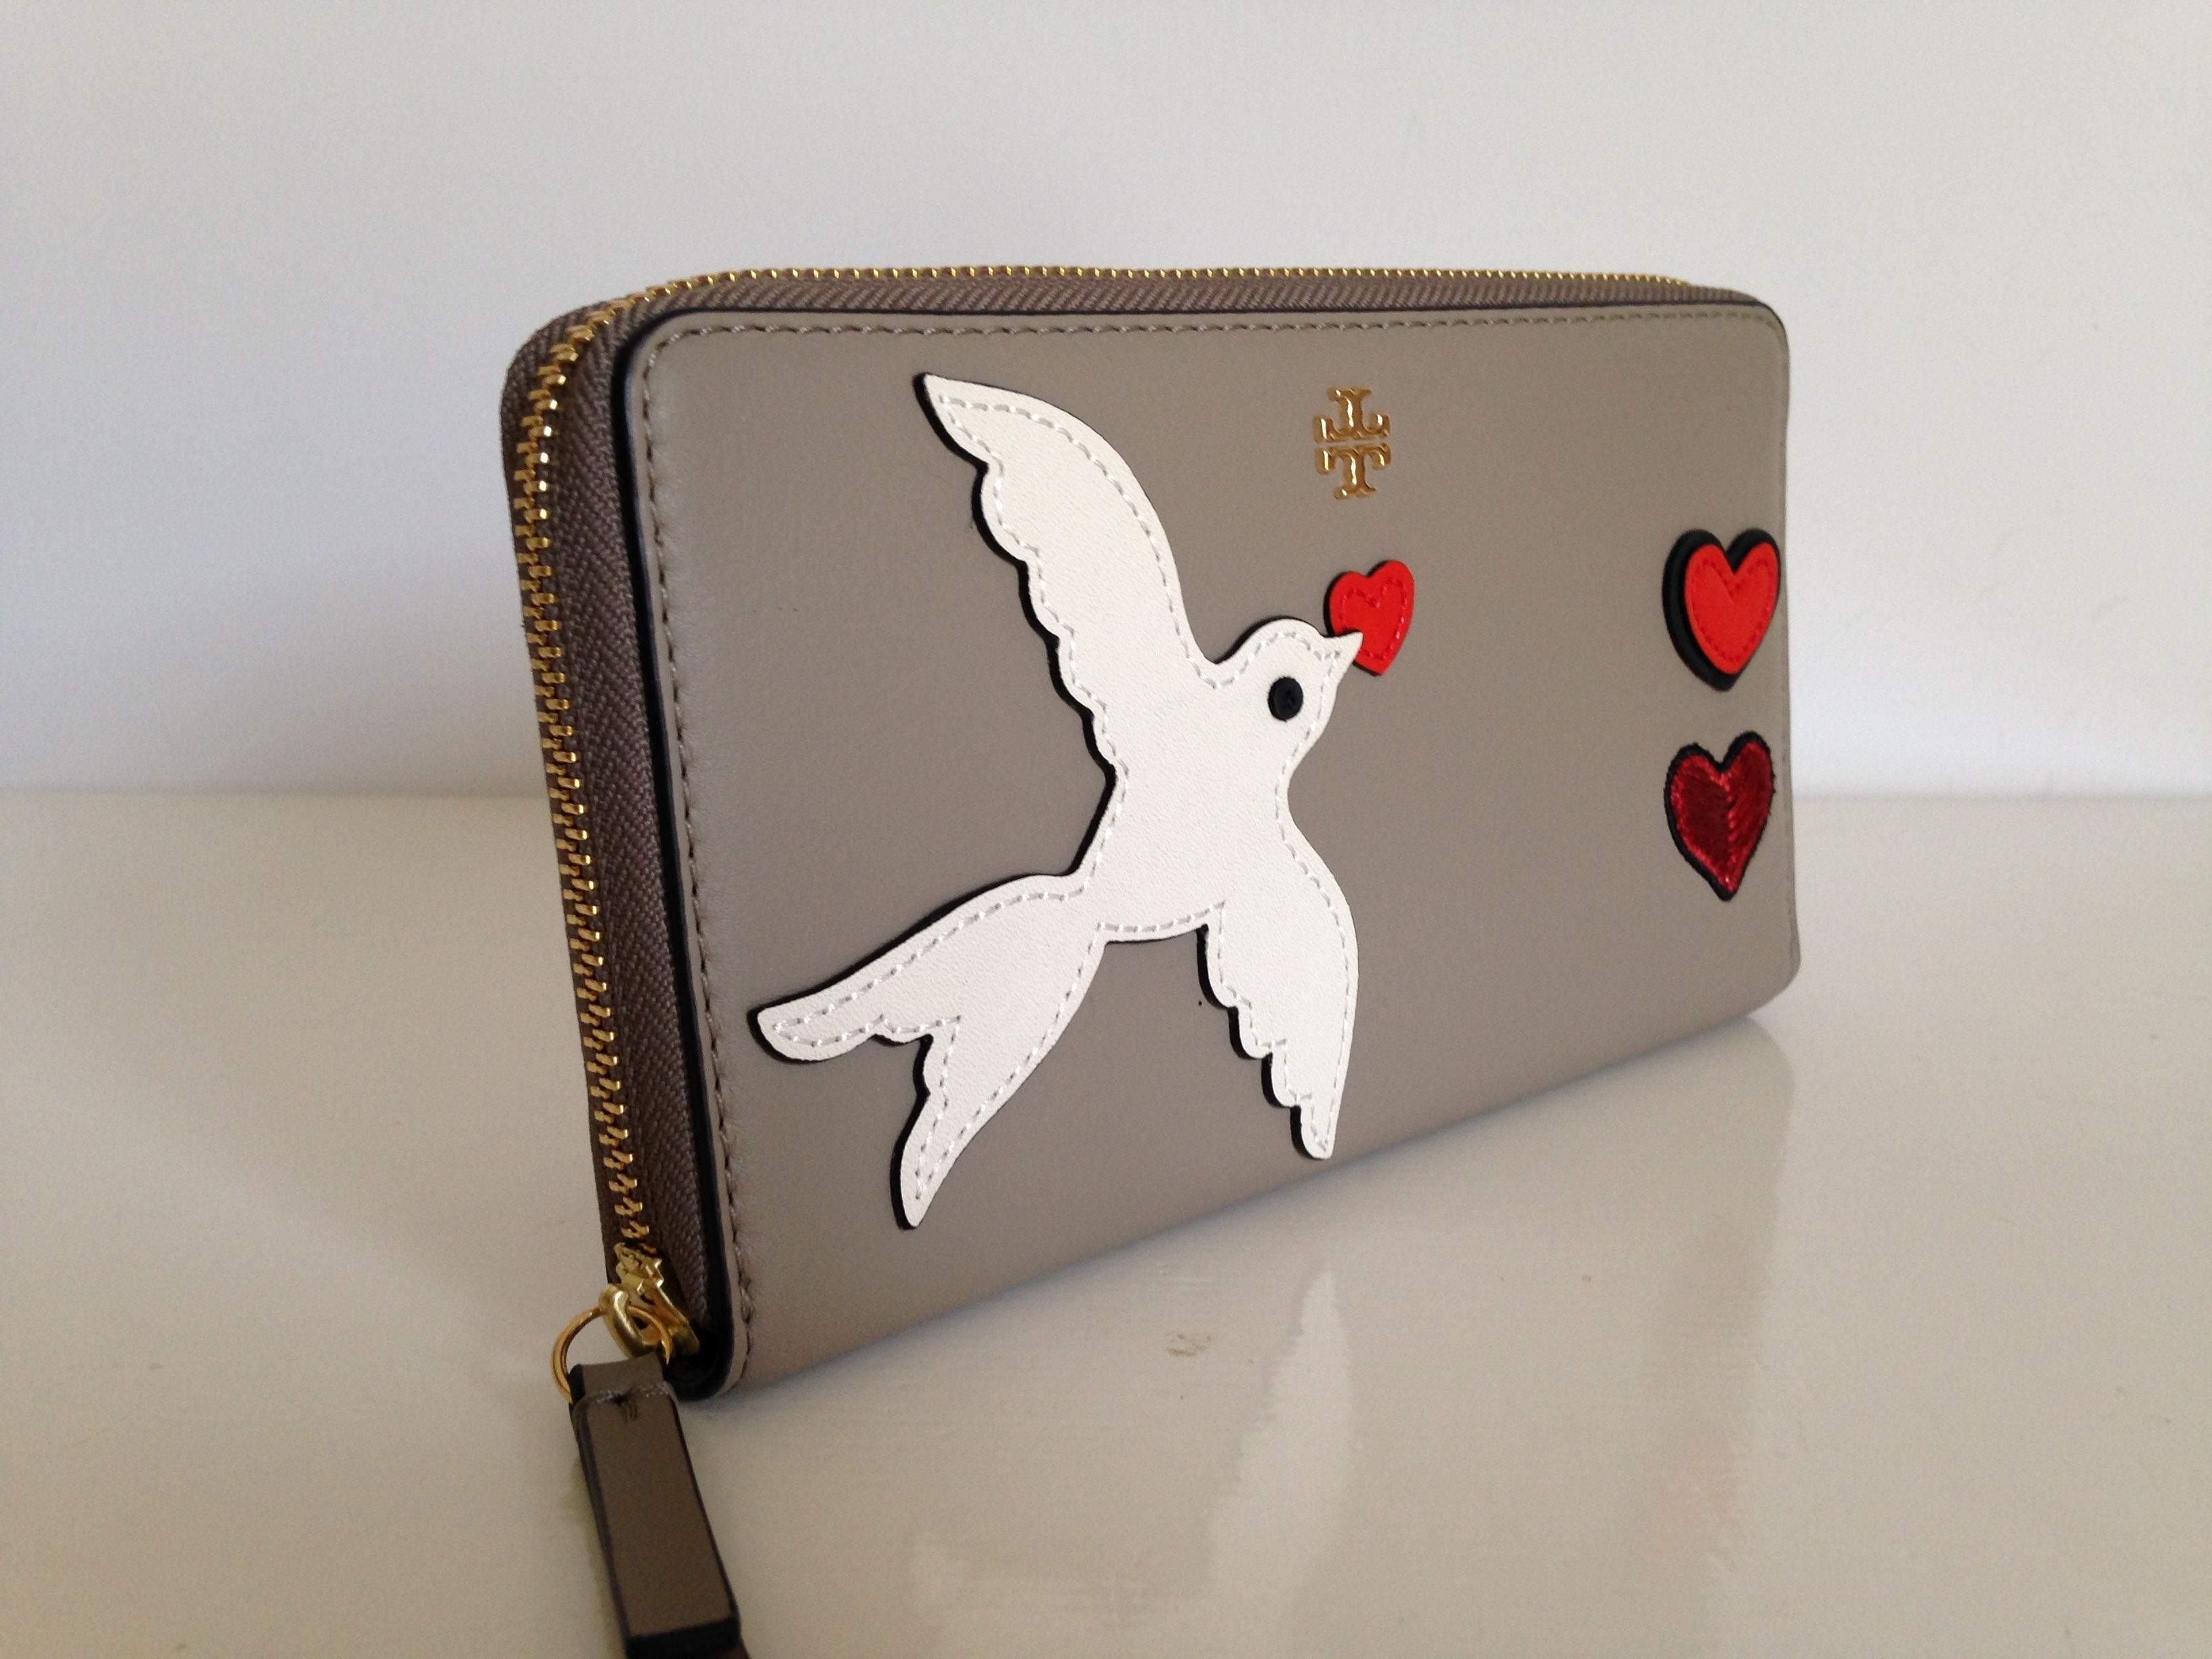 TORY BURCH PEACE EMBELLISHED ZIP CONTINENTAL WALLET  即発送